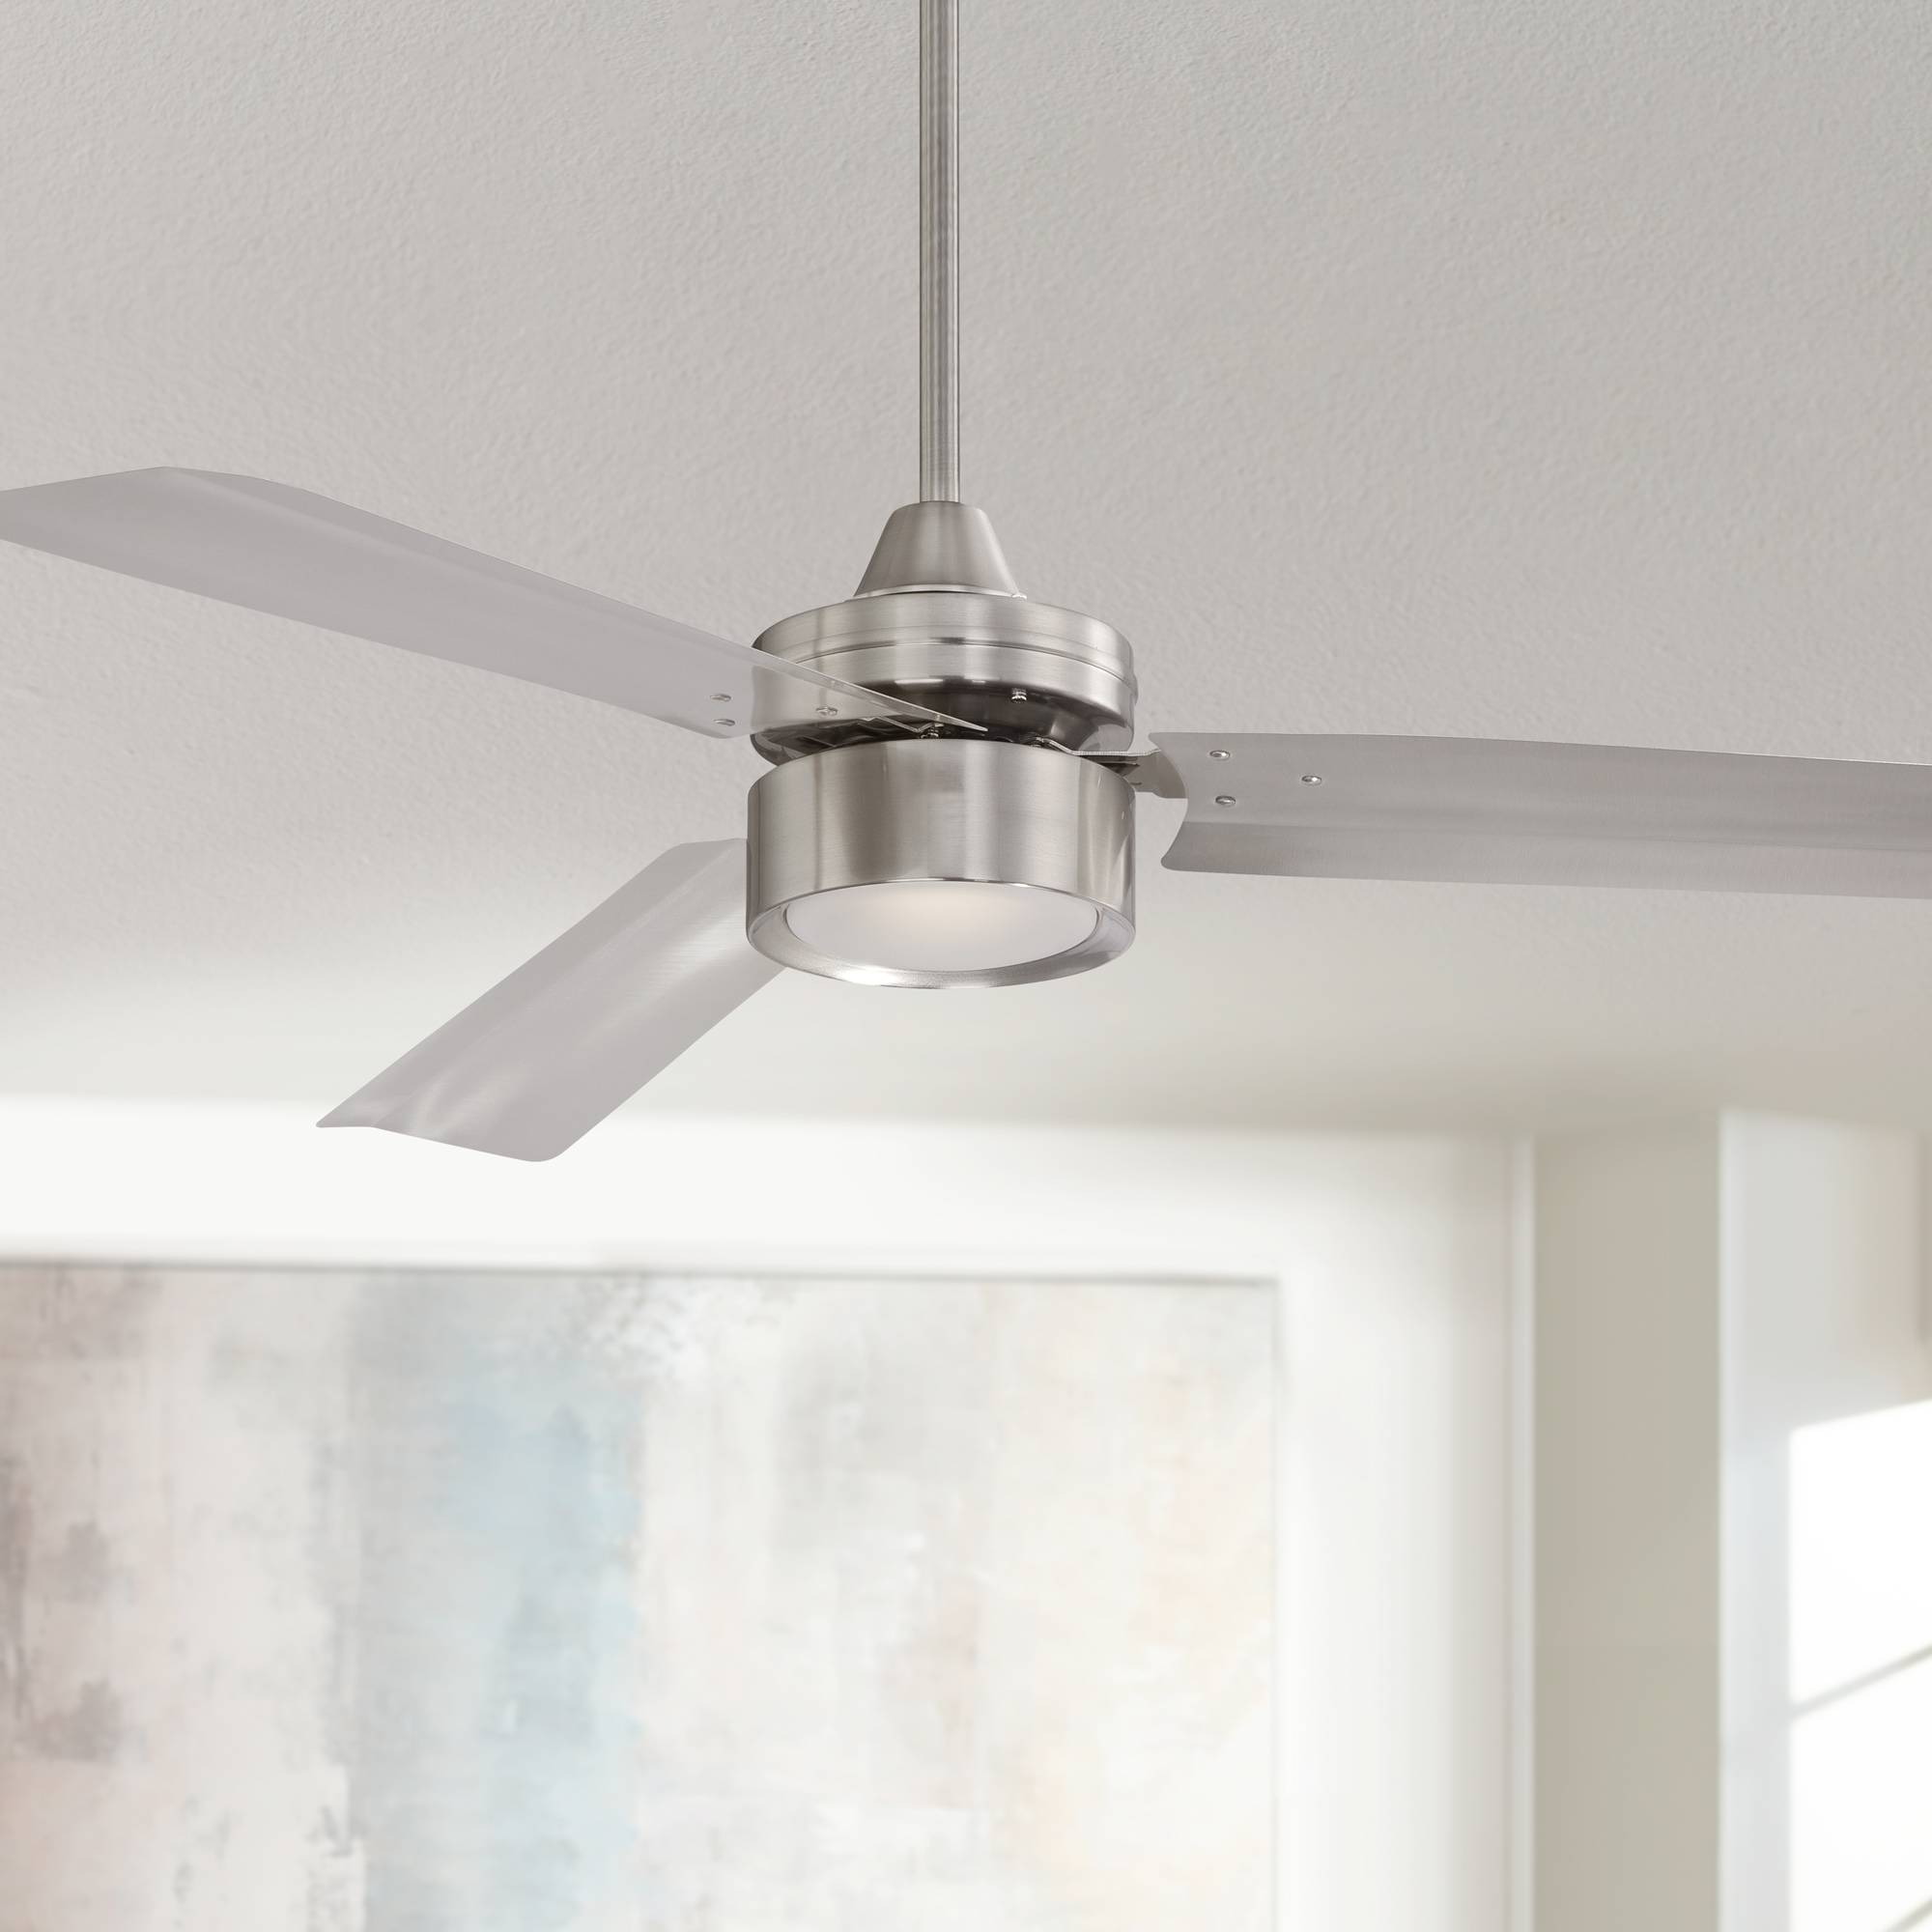 52 casa arcus brushed nickel led ceiling fan